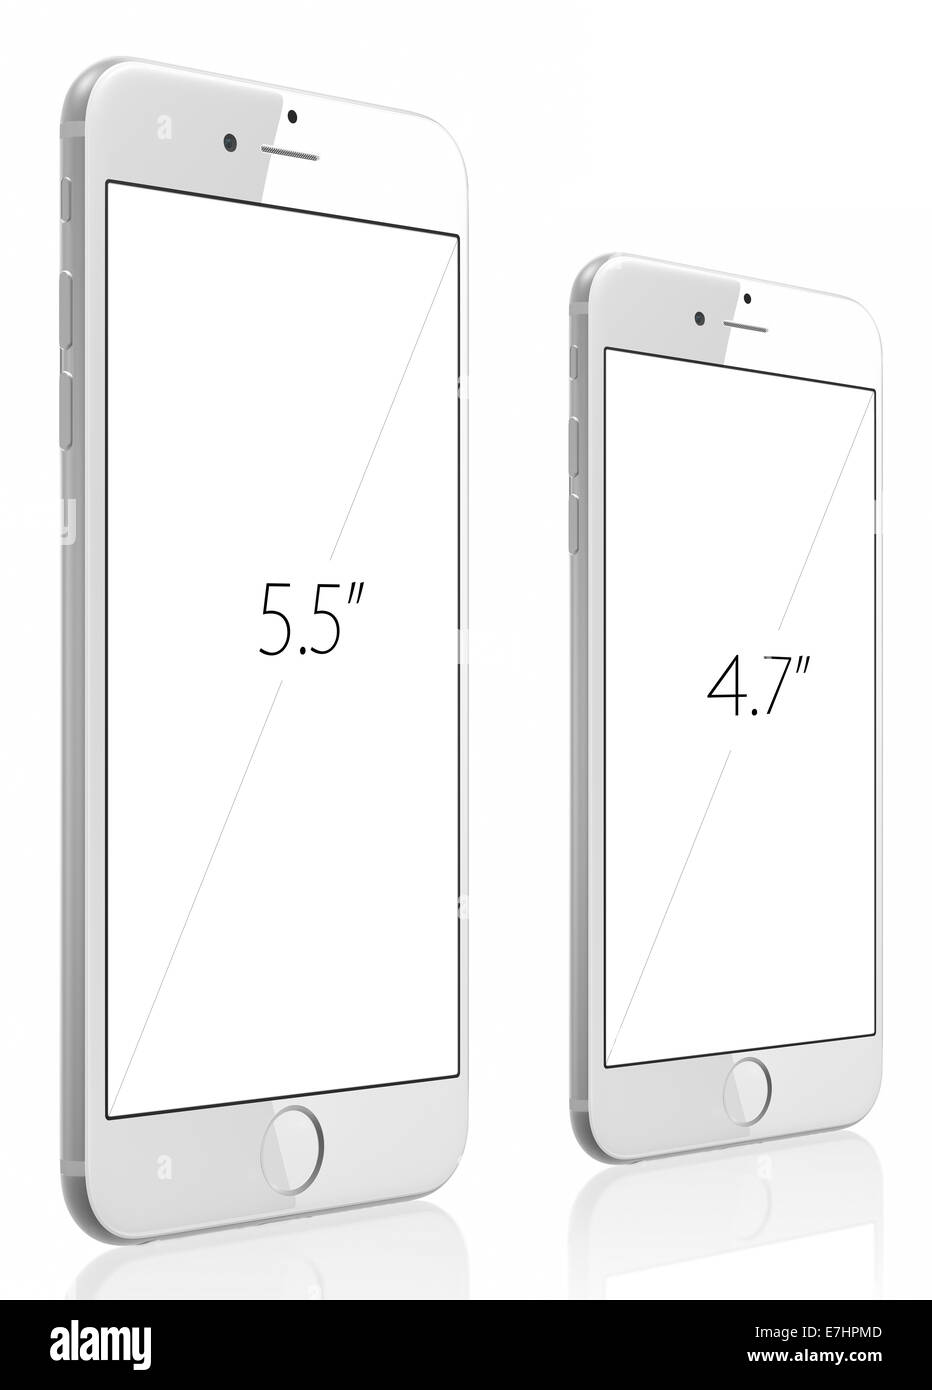 The new SmartPhone with higher-resolution 4.7 and 5.5-inch screens - Stock Image